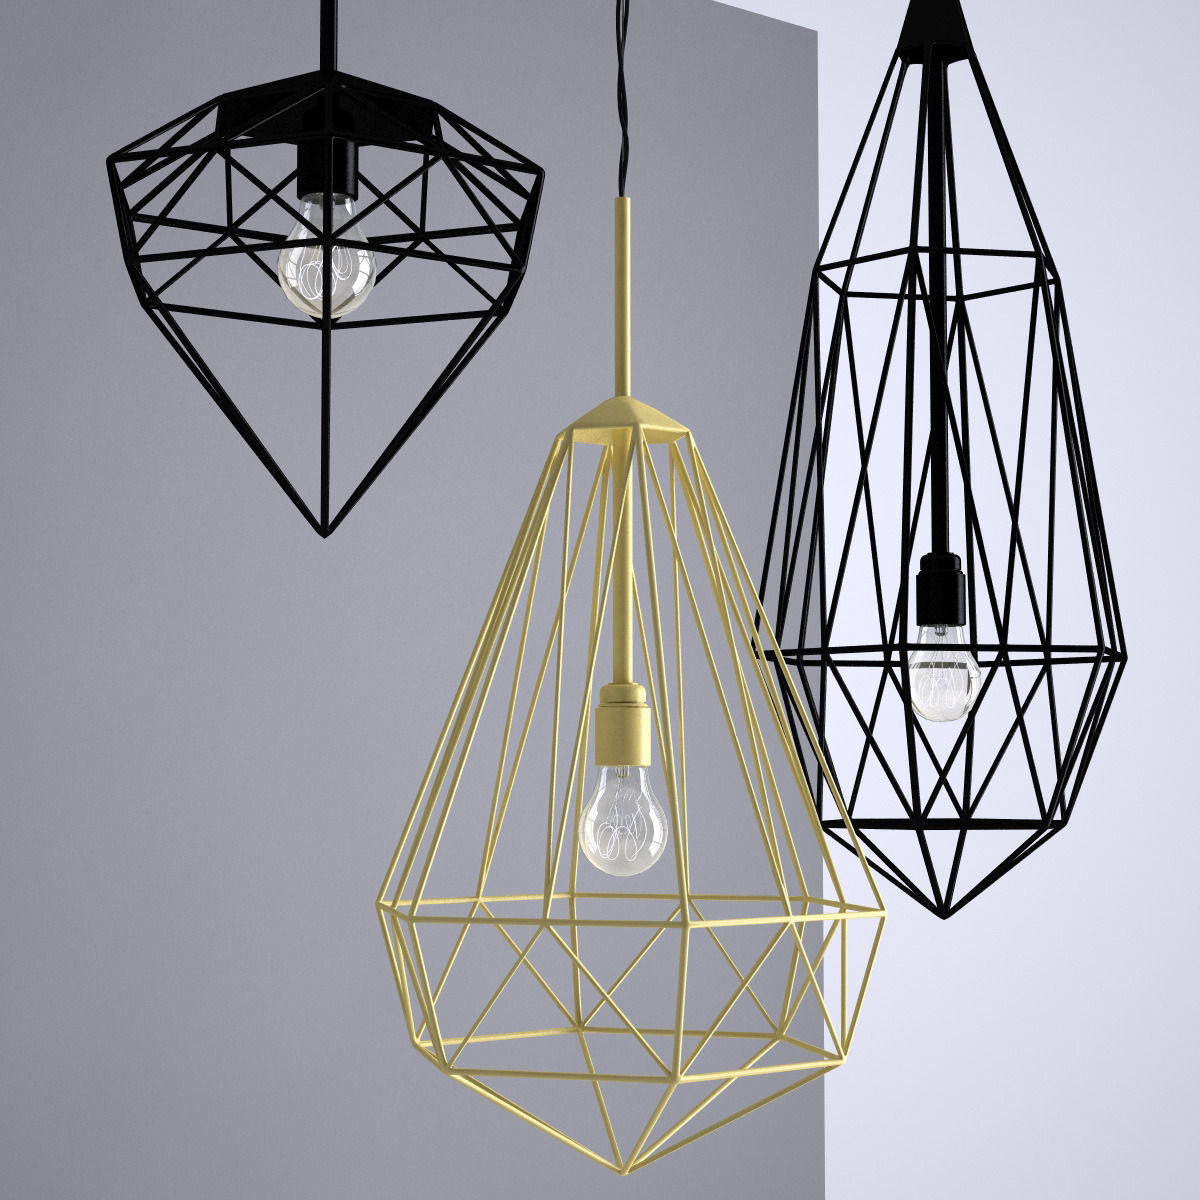 Hanging Ceiling Light 3d Autocad Model: Jspr Diamonds Ceiling Light 3D Model MAX FBX